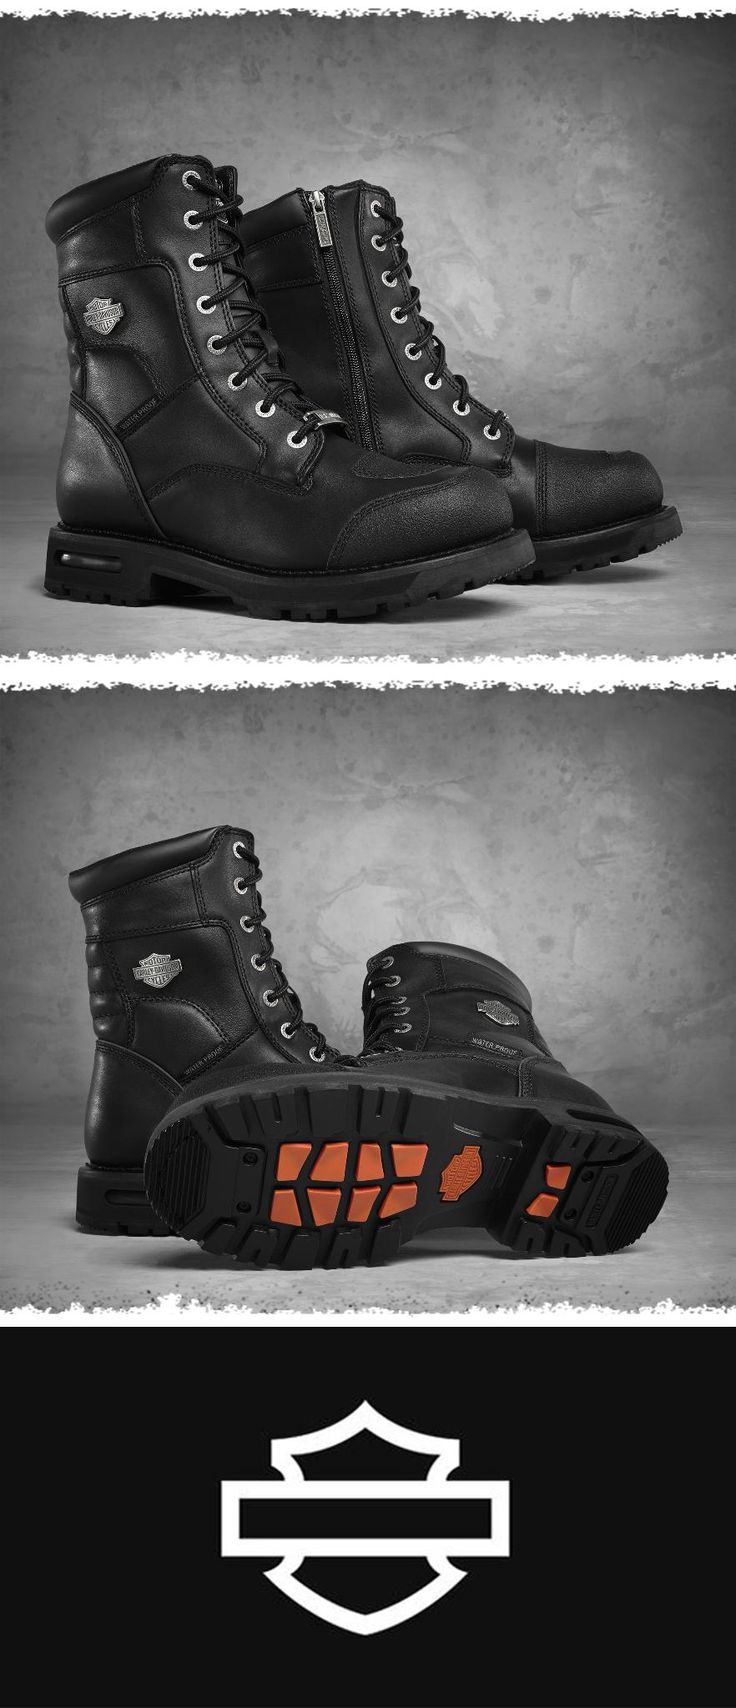 The rugged look and great quality will be the perfect addition to your riding collection.   Harley-Davidson Men's Richfield Waterproof Performance Boots #FathersDay